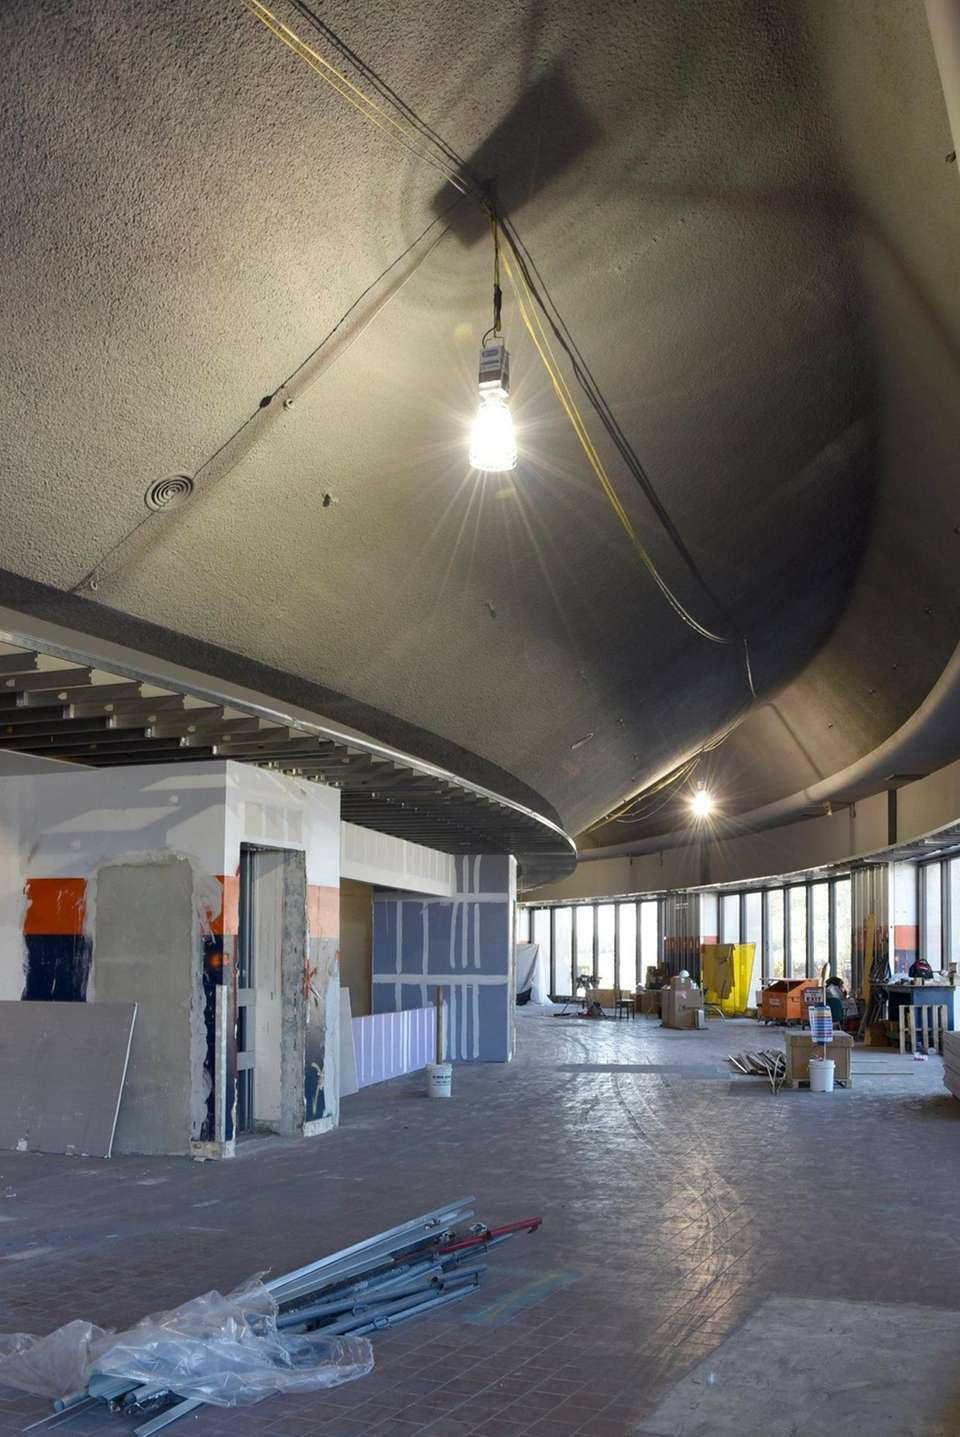 The Nassau Veterans Memorial Coliseum is undergoing renovation